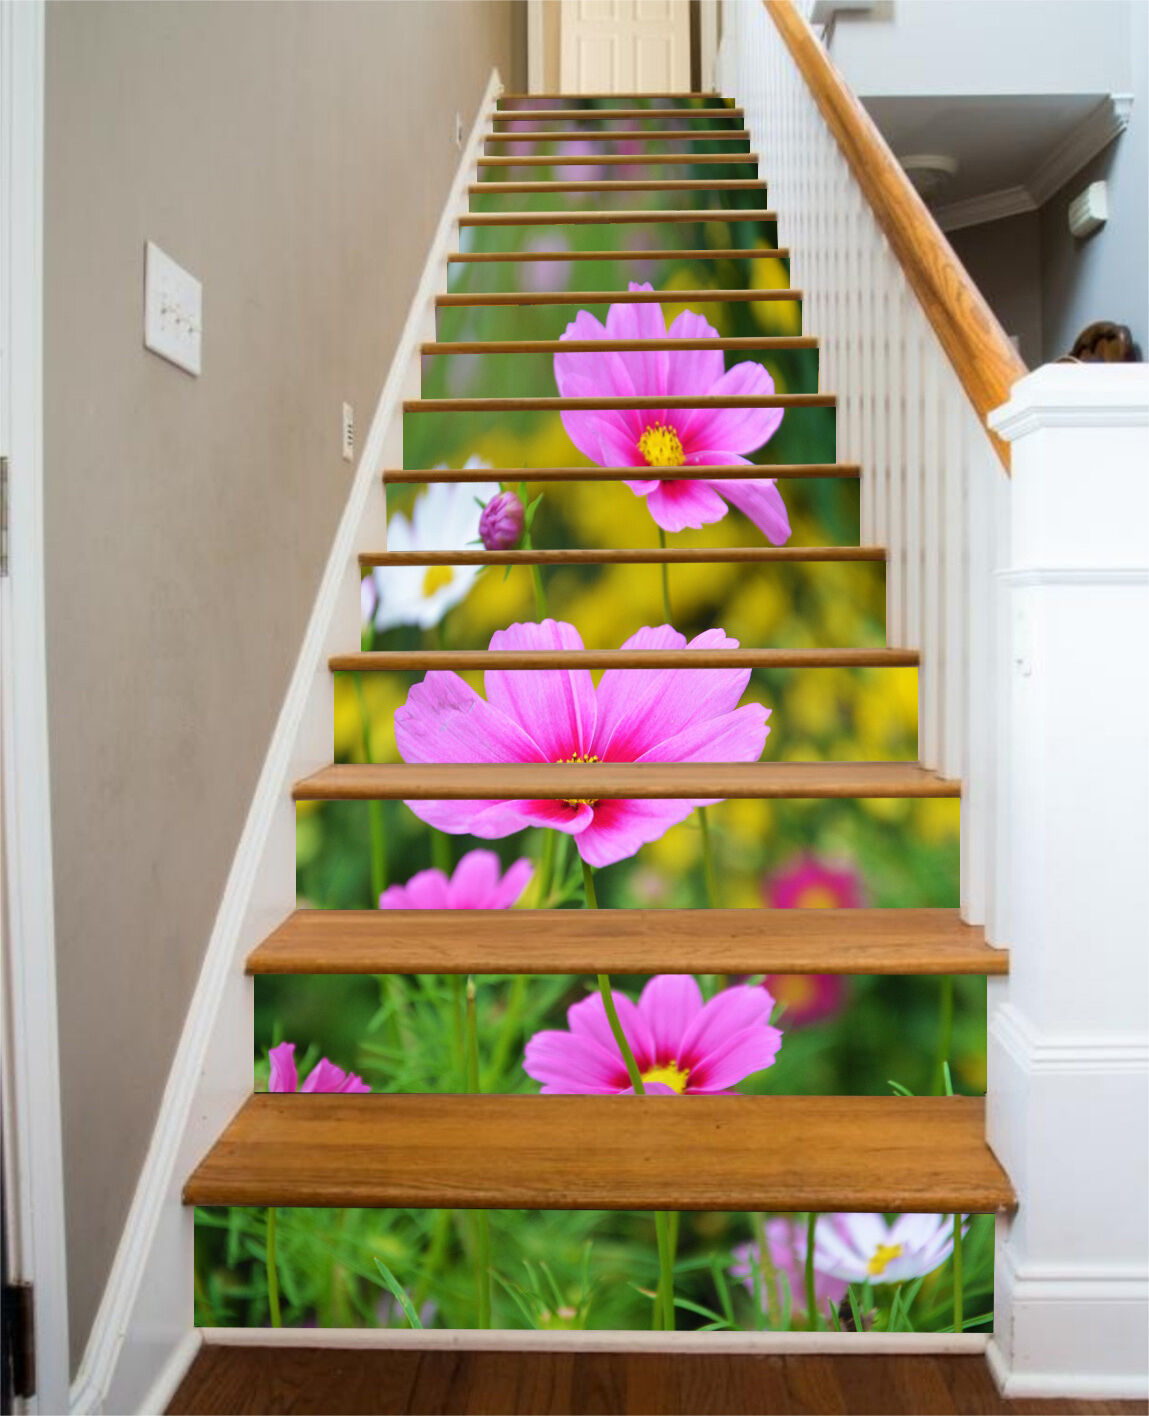 3D Grace Flowers 91 Stair Risers Decoration Photo Mural Vinyl Decal WandPapier UK